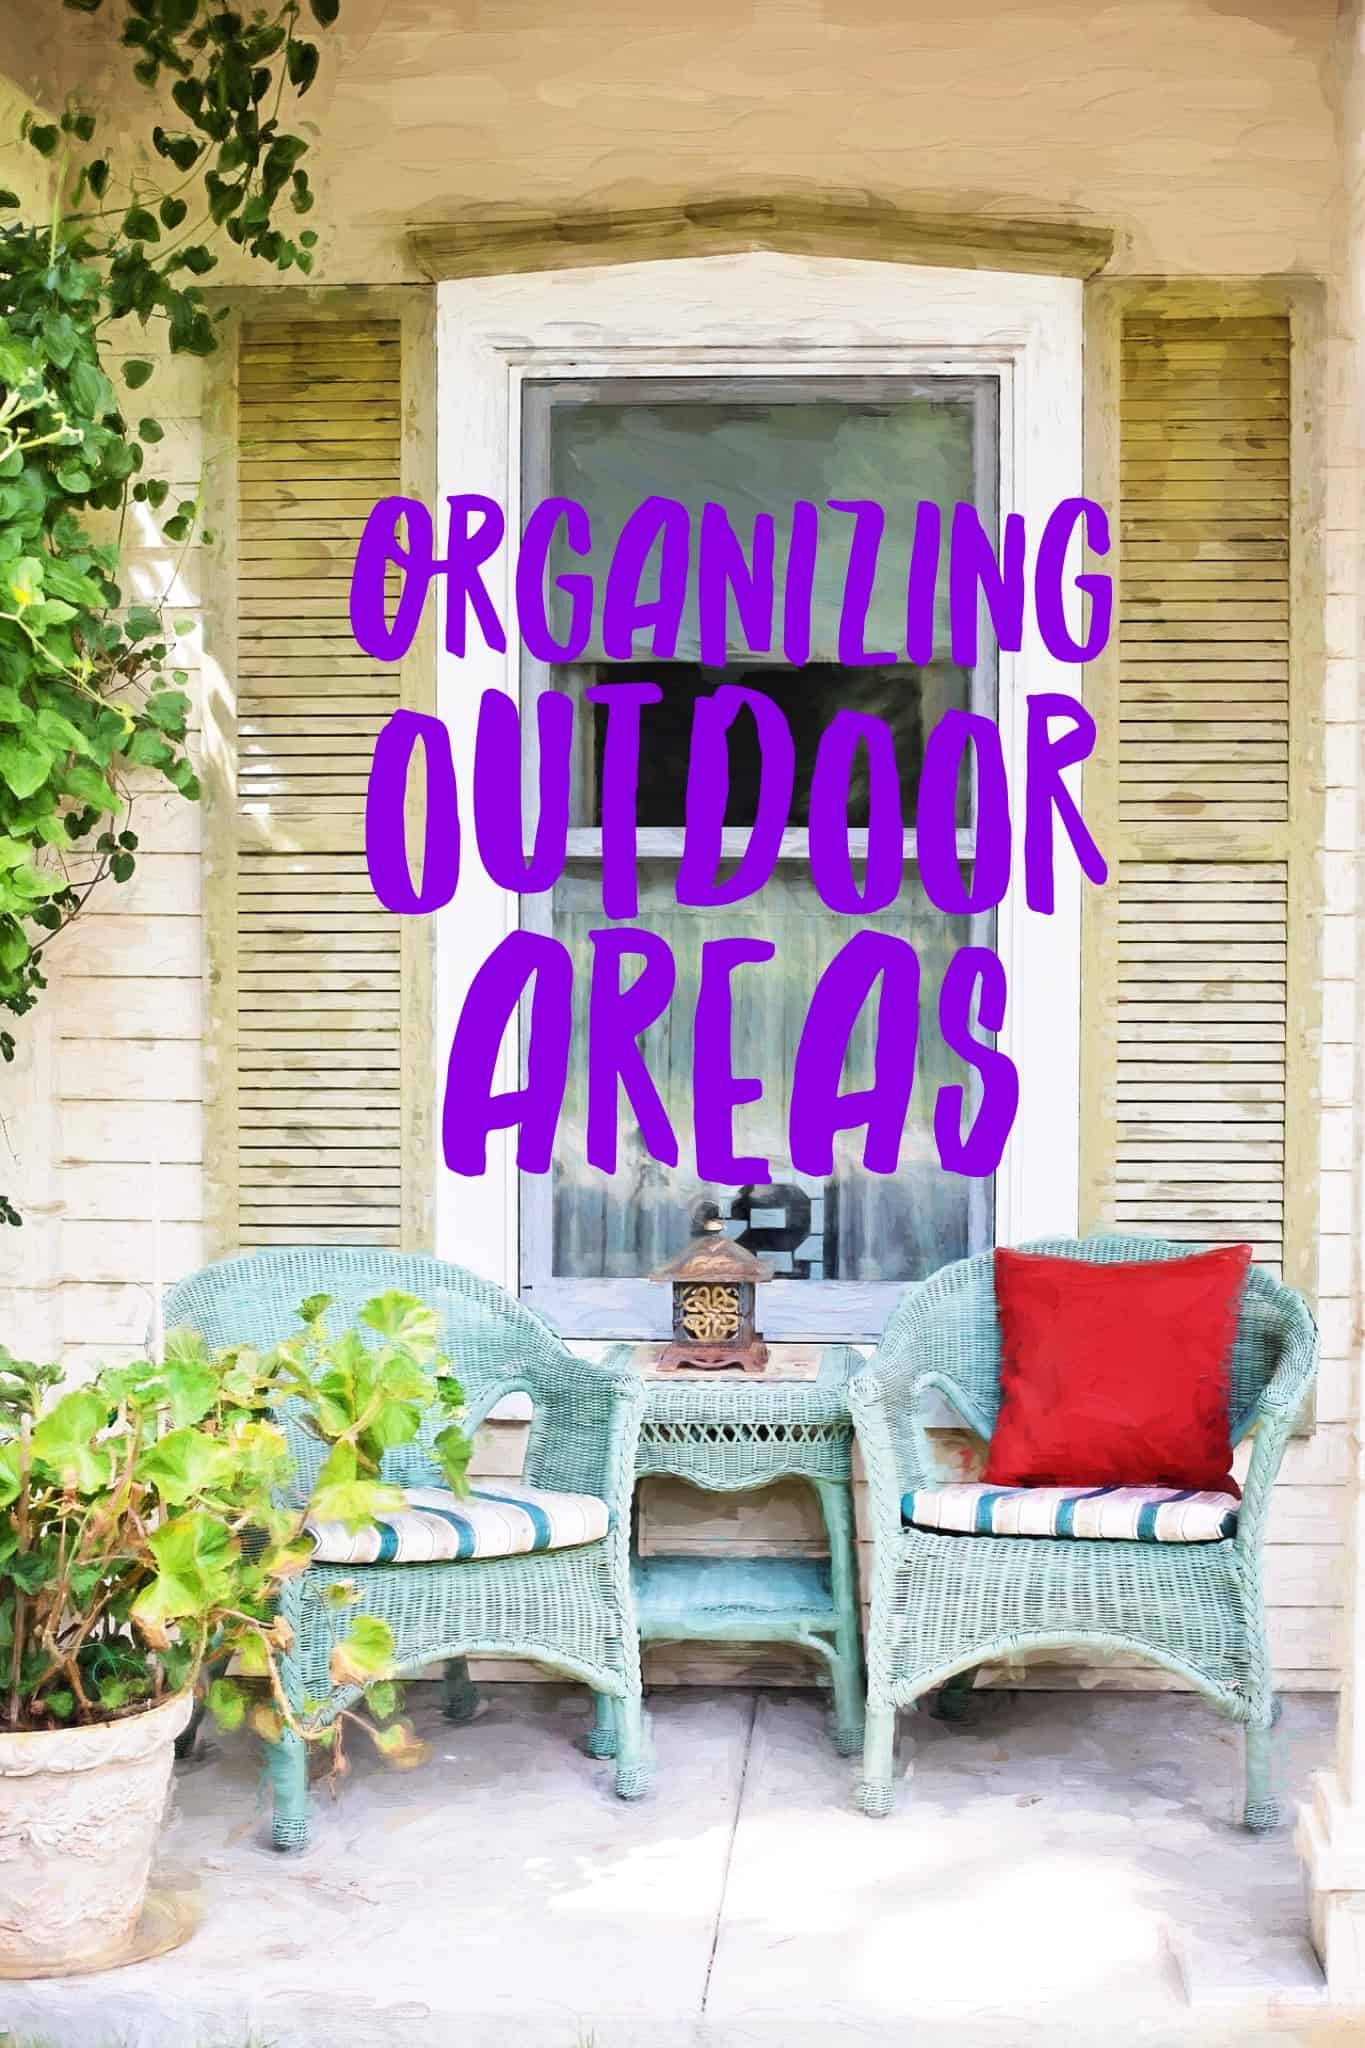 Organizing Outdoor Areas Title